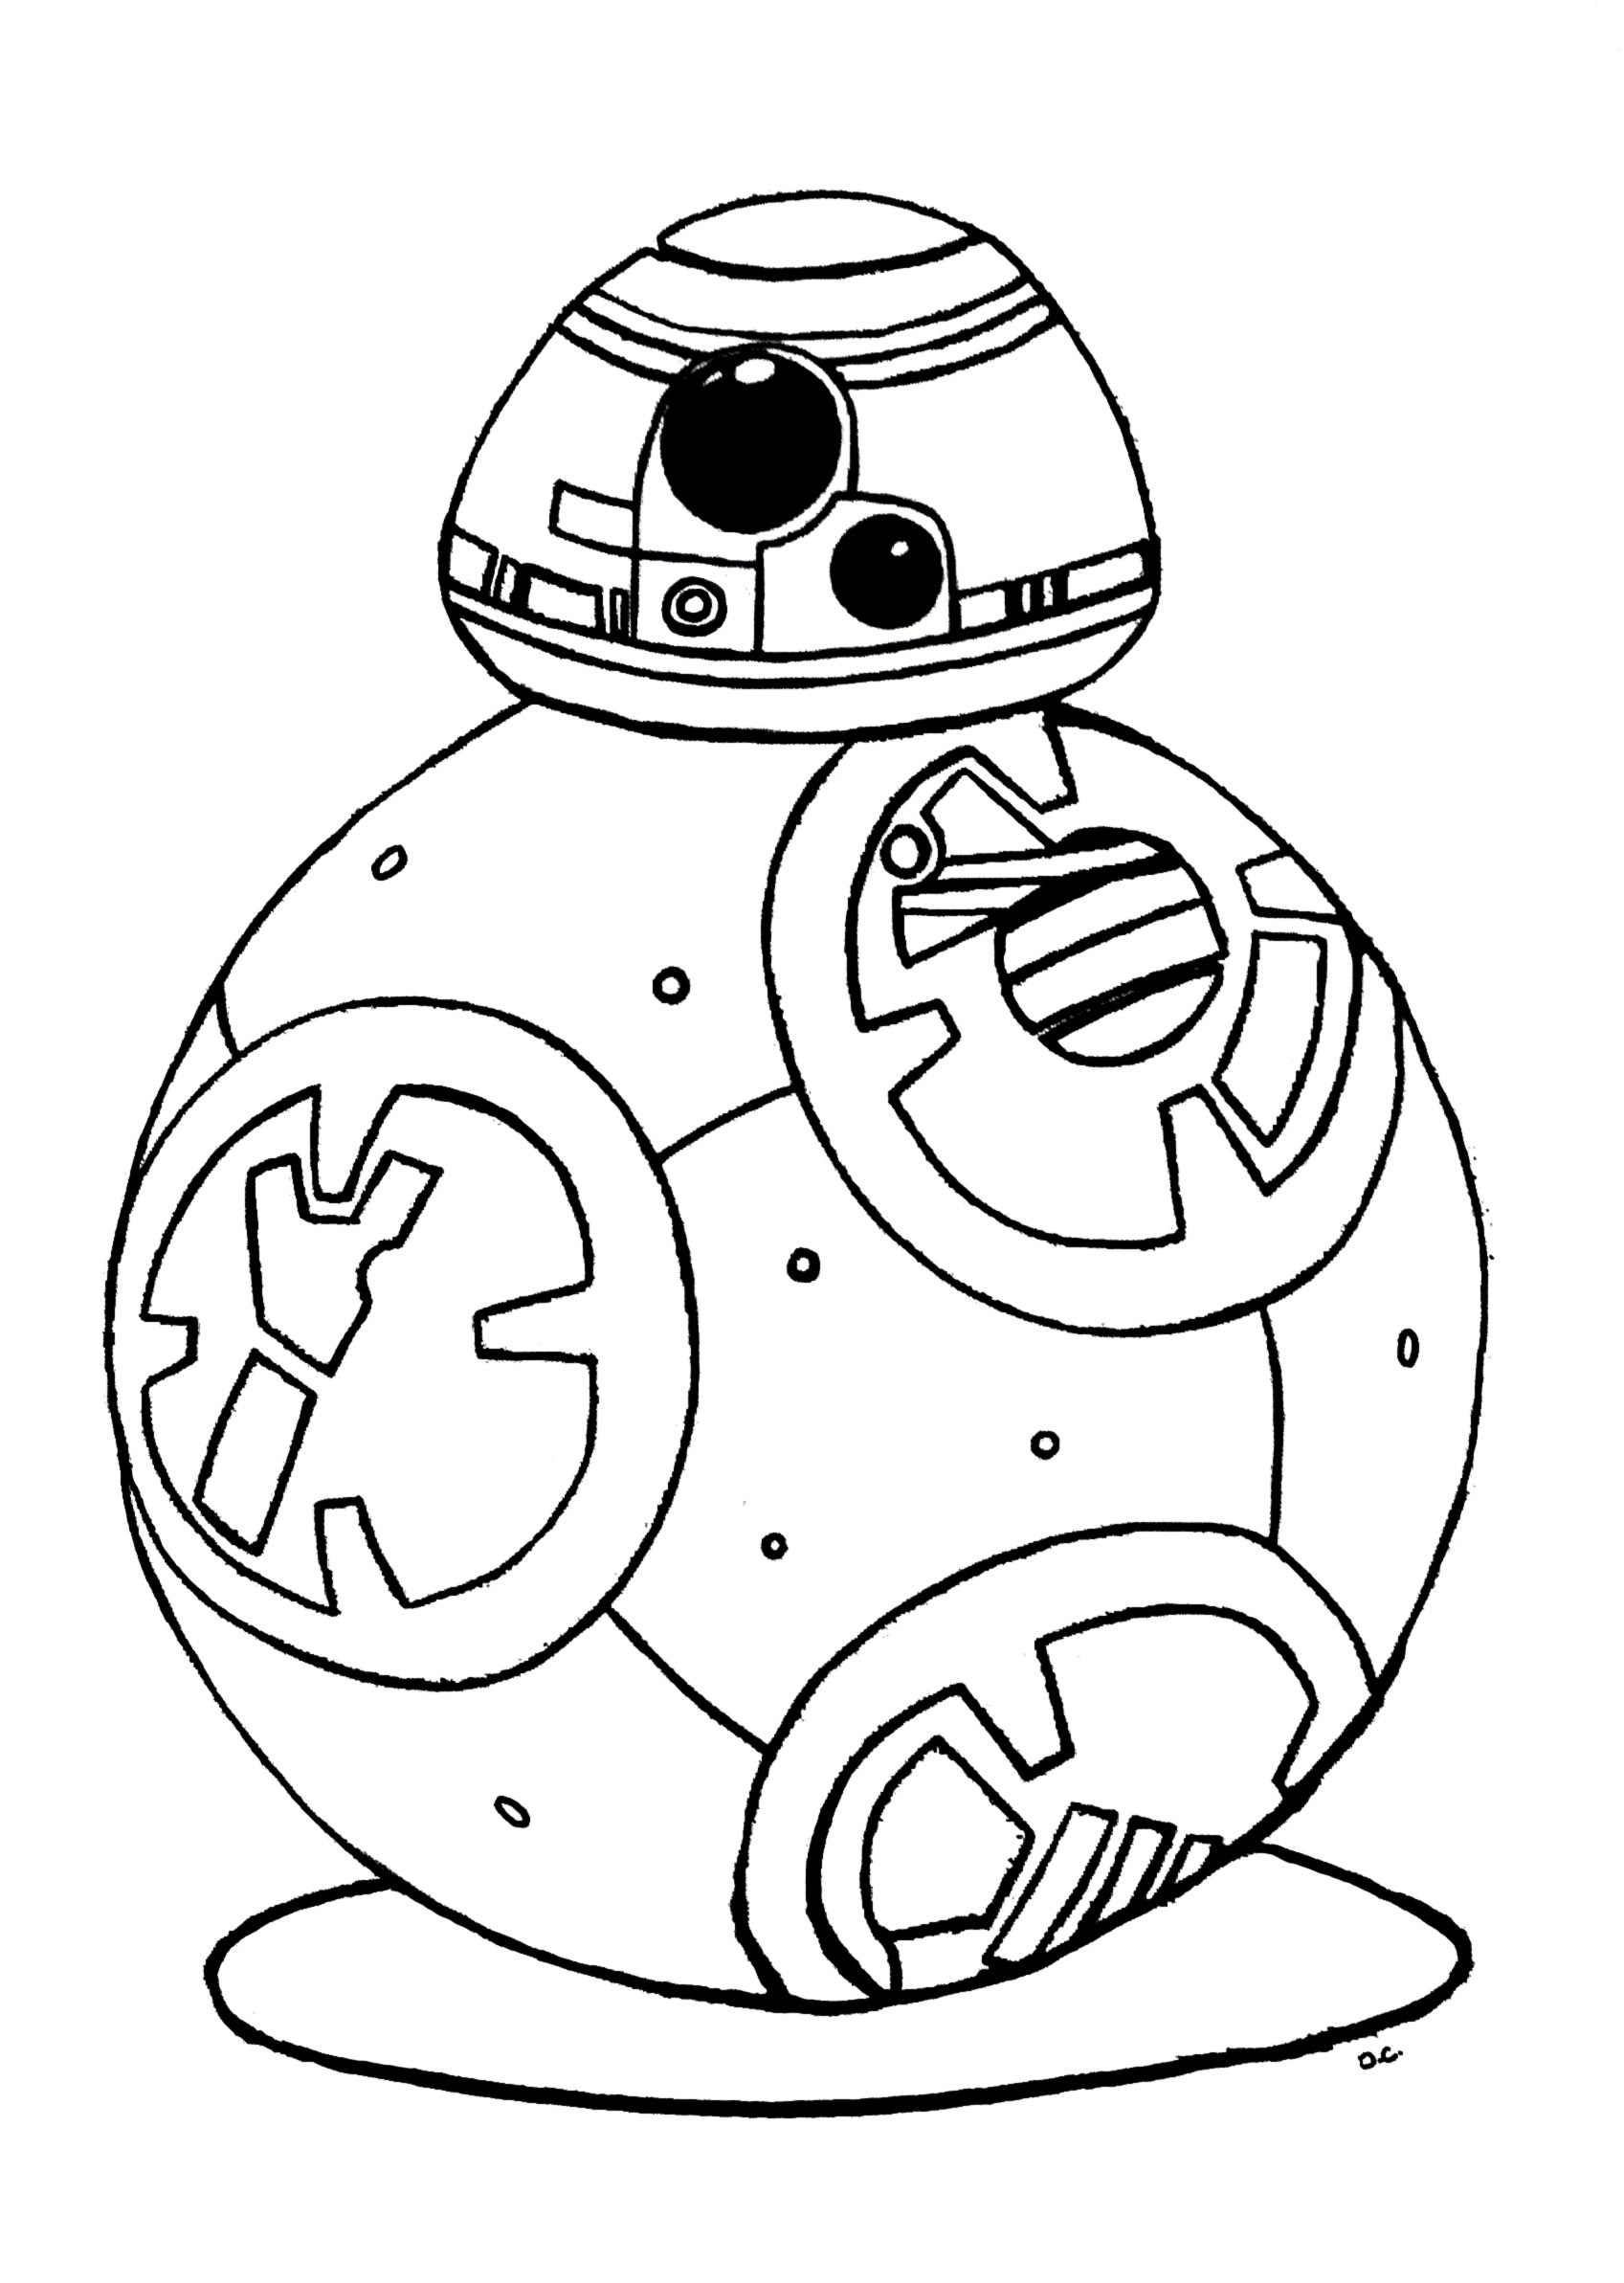 Star wars colouring for kids